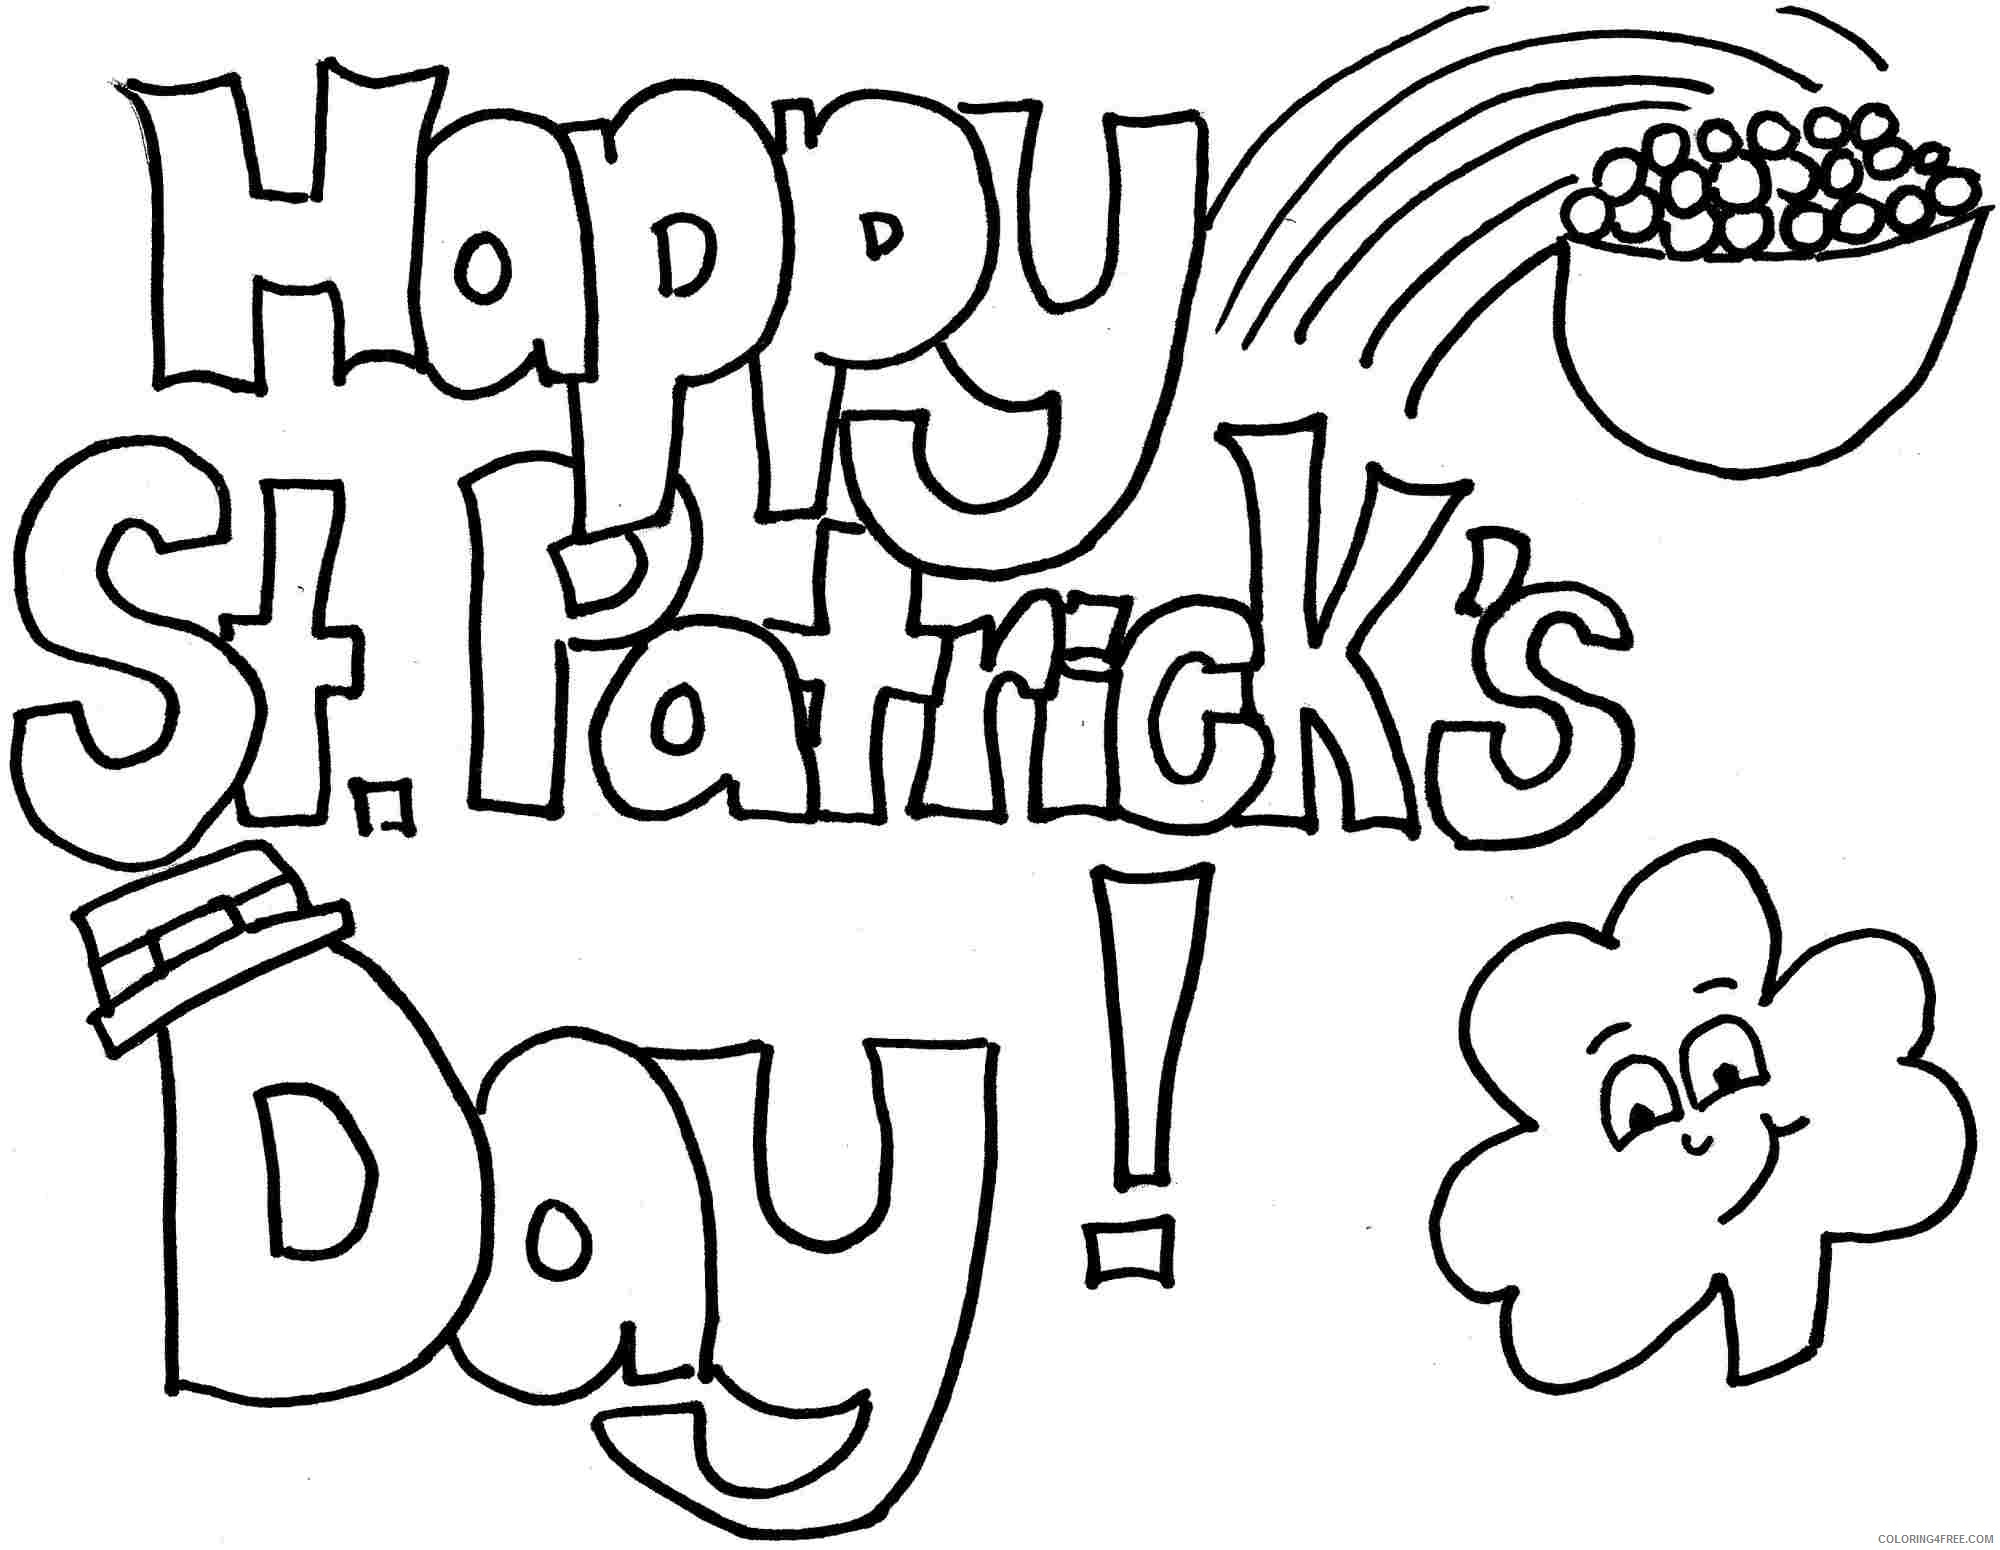 st patricks day coloring pages free for kids Coloring4free